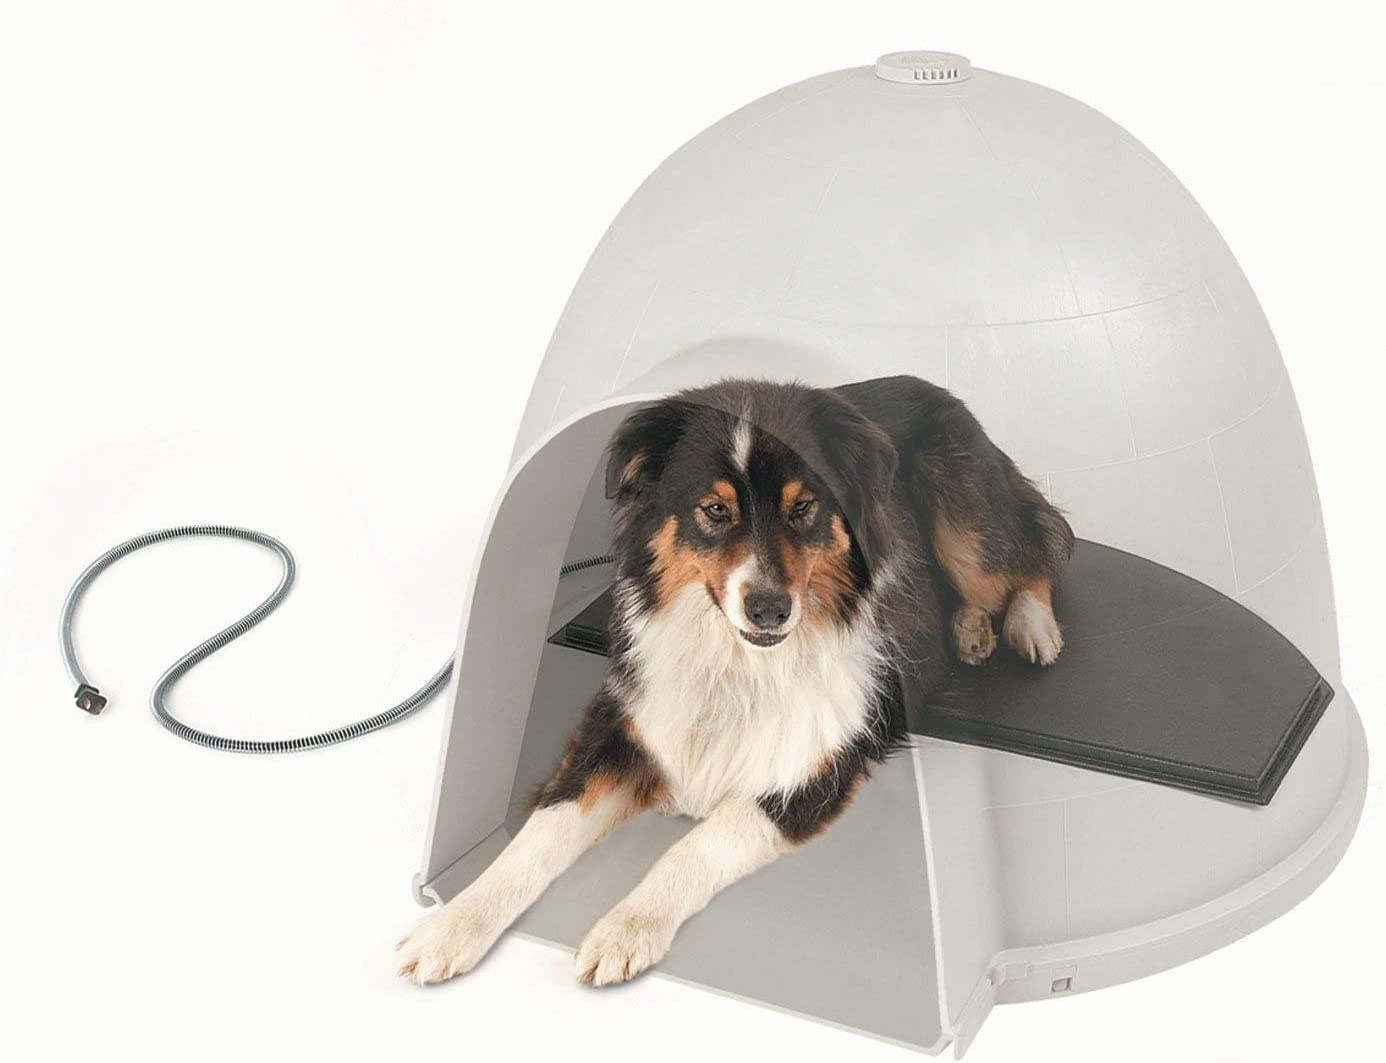 K&H PET PRODUCTS K&H Kennel Igloo Style